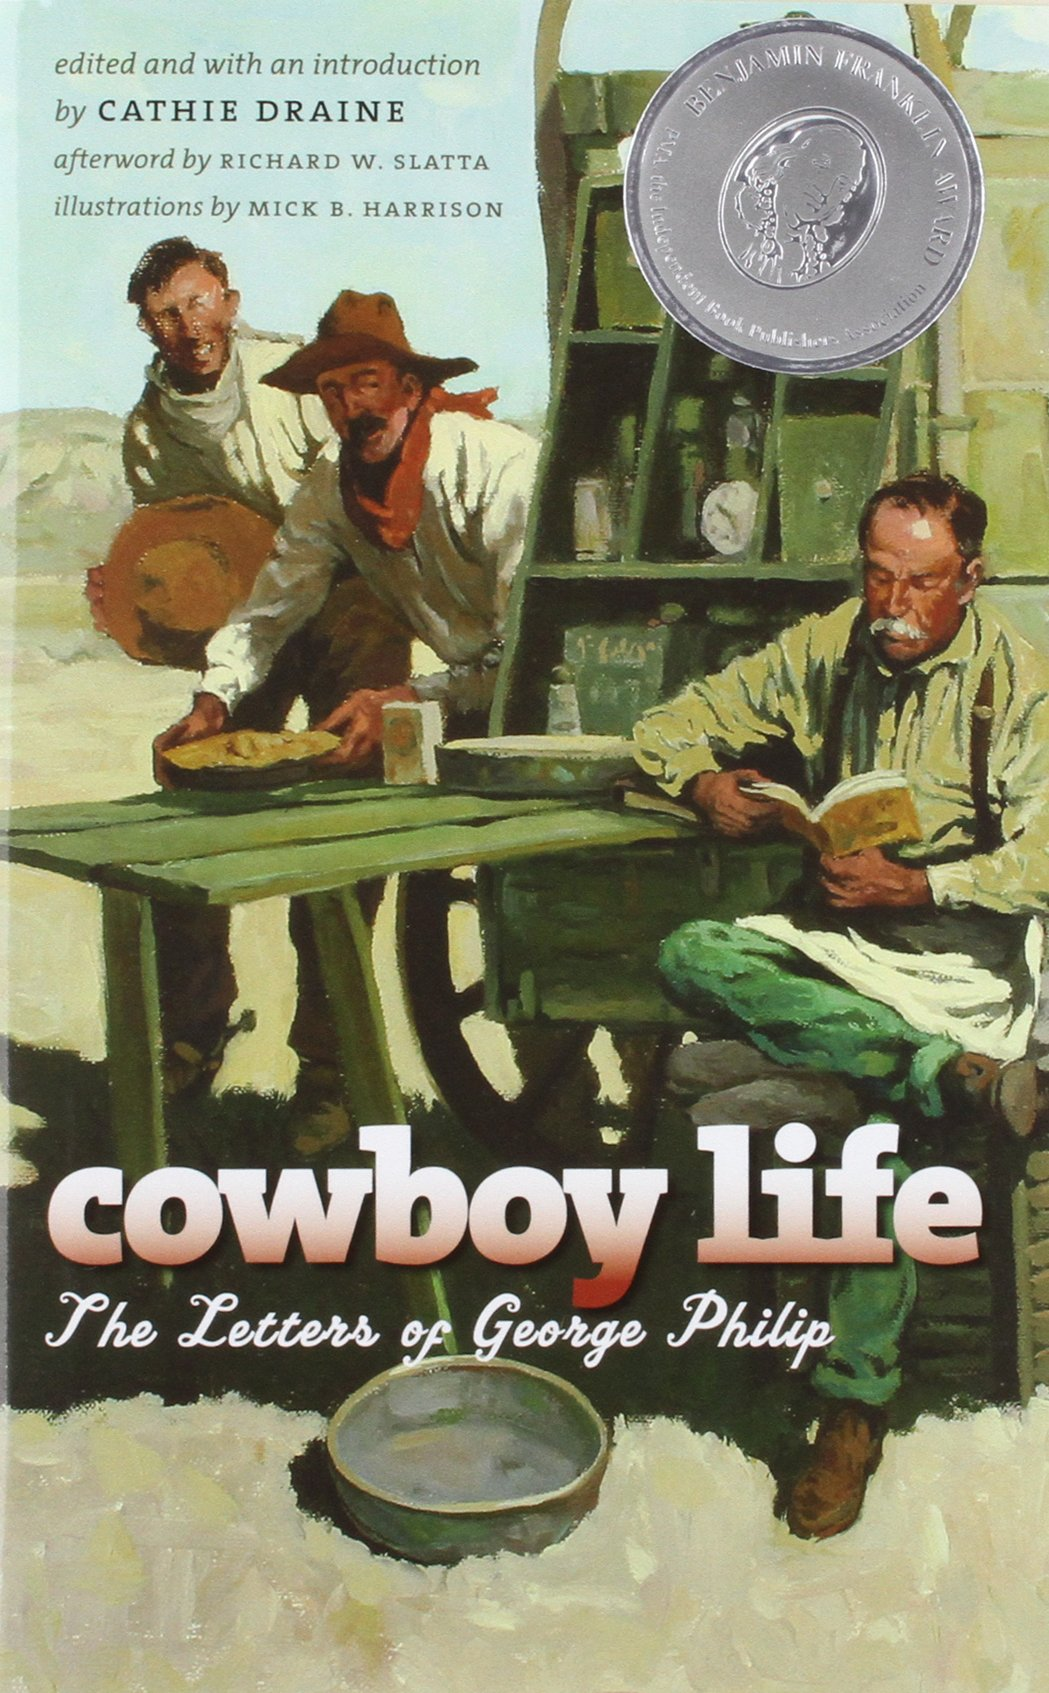 Cowboy Life: The Letters of George Philip